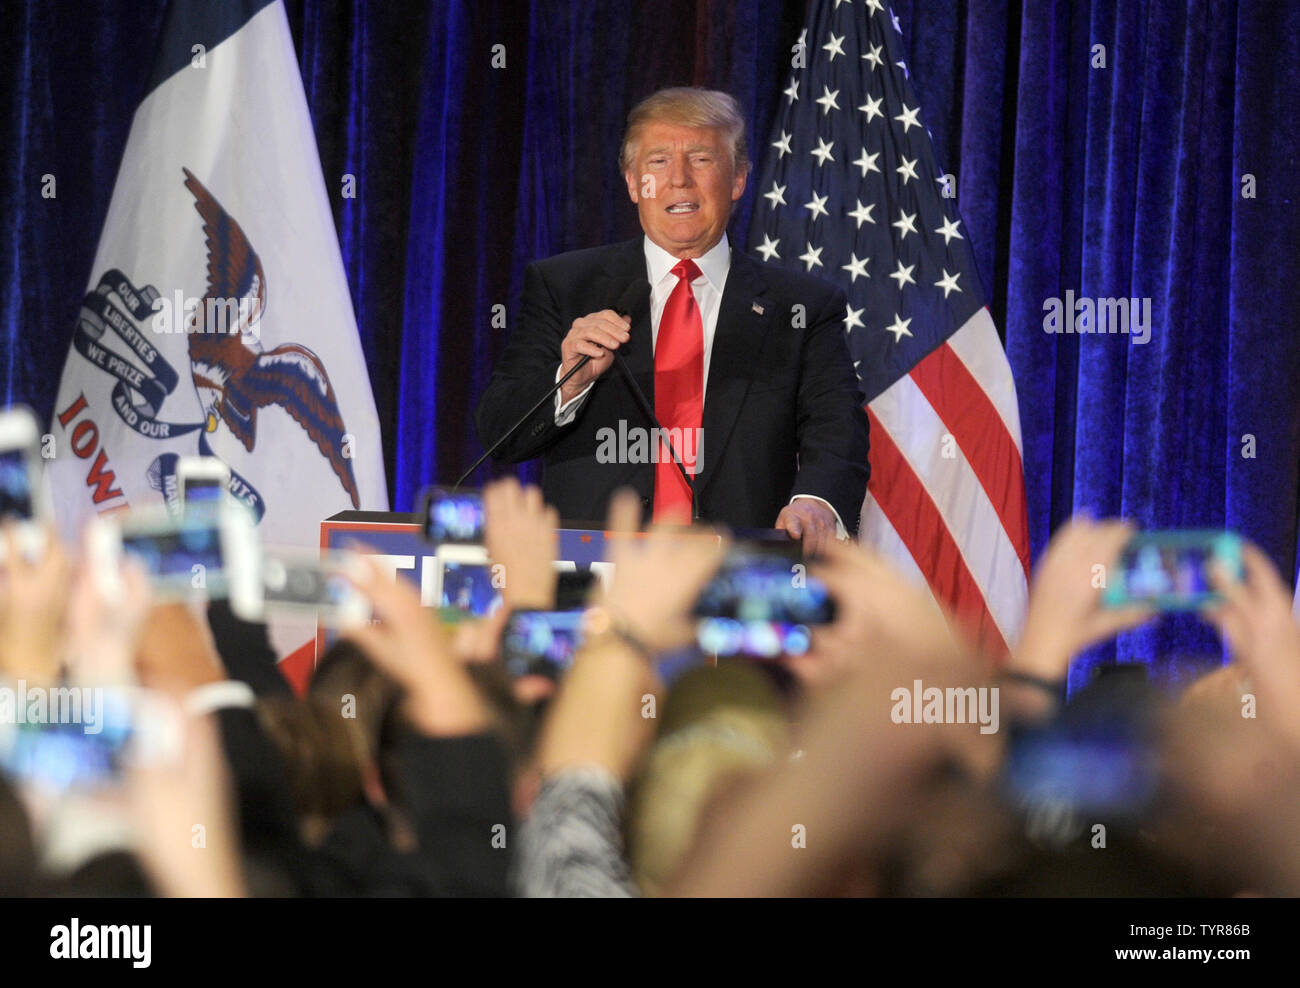 Republican presidential candidate Donald Trump speaks after coming in second place at his Iowa Caucus night gathering on February 1, 2016 in Des Moines, Iowa. Sen. Ted Cruz wins the Iowa Republican Caucus.     Photo by Dennis Van Tine/UPI - Stock Image